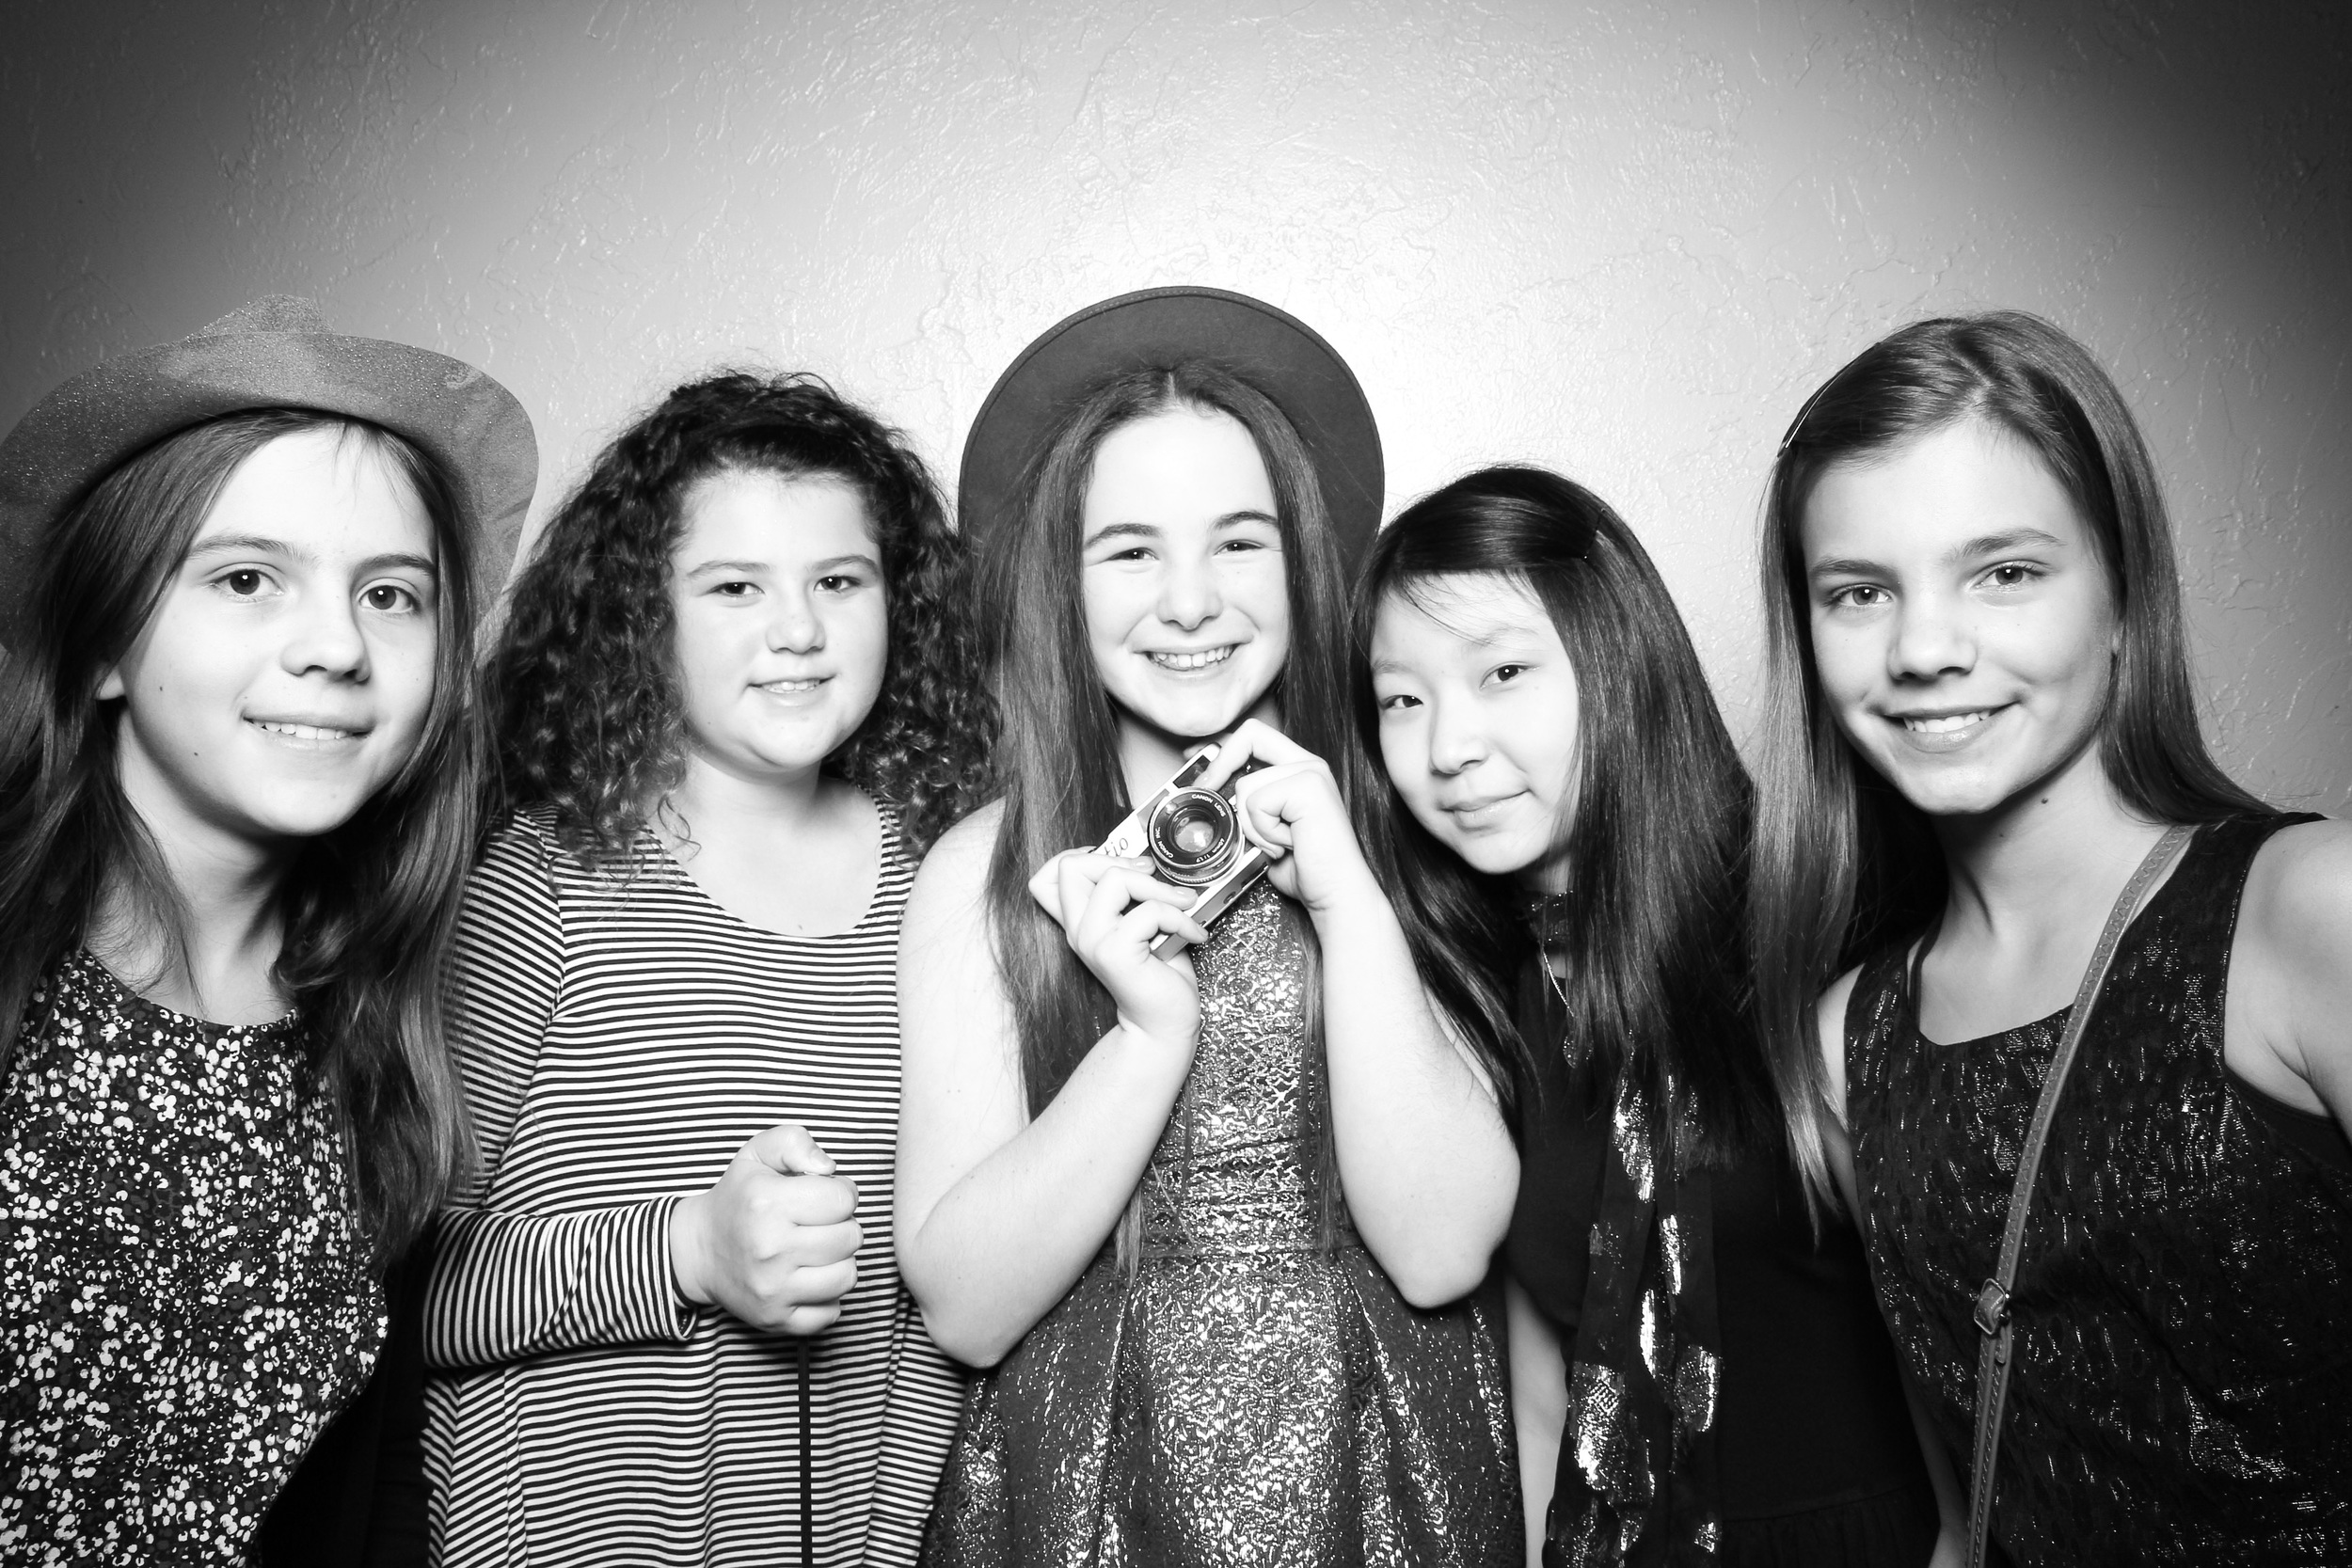 The girls post for a Bat Mitzvah photo booth pic at River Roast Chicago!